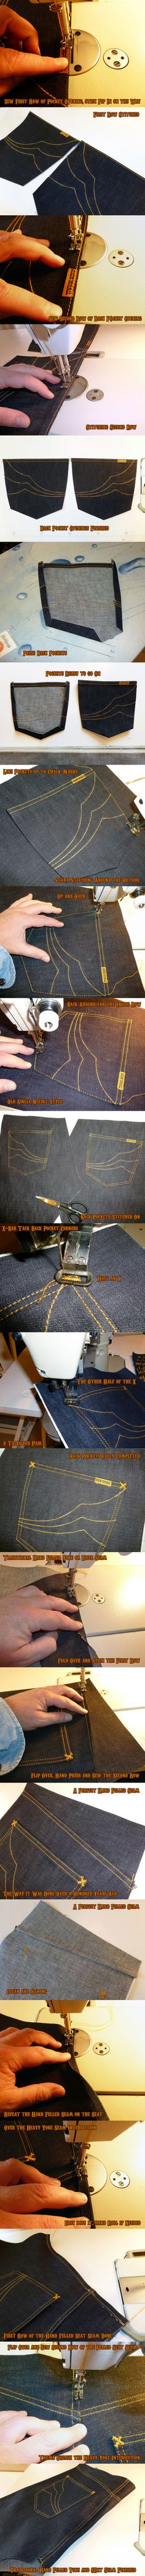 Awesome pic series on the handmade jeans!